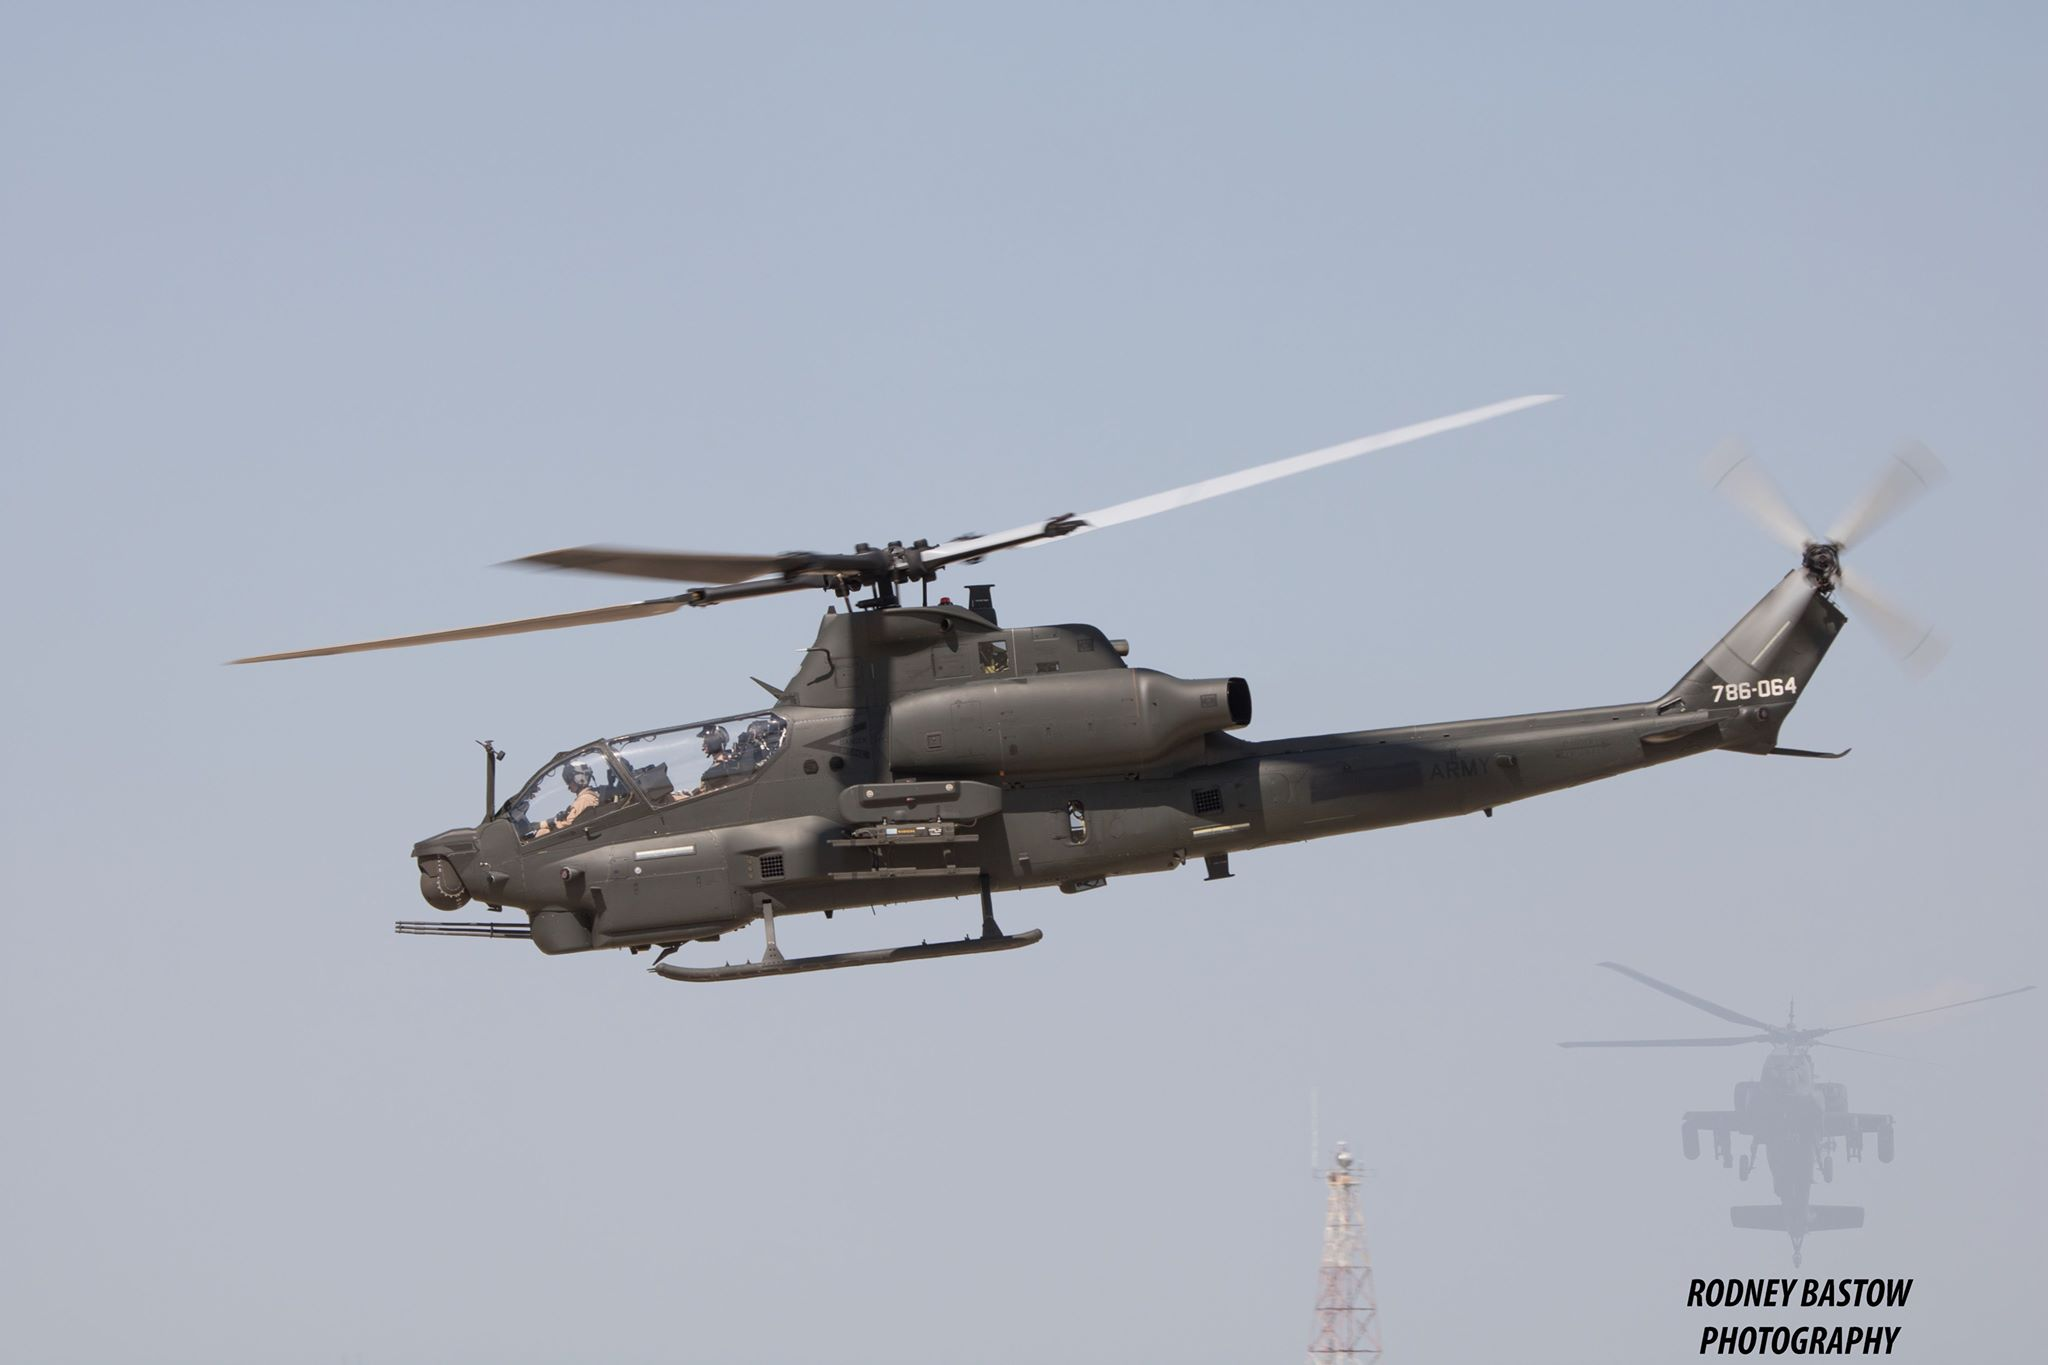 AH-1Z Viper Attack Helicopters Spotted in Amarillo, Texas